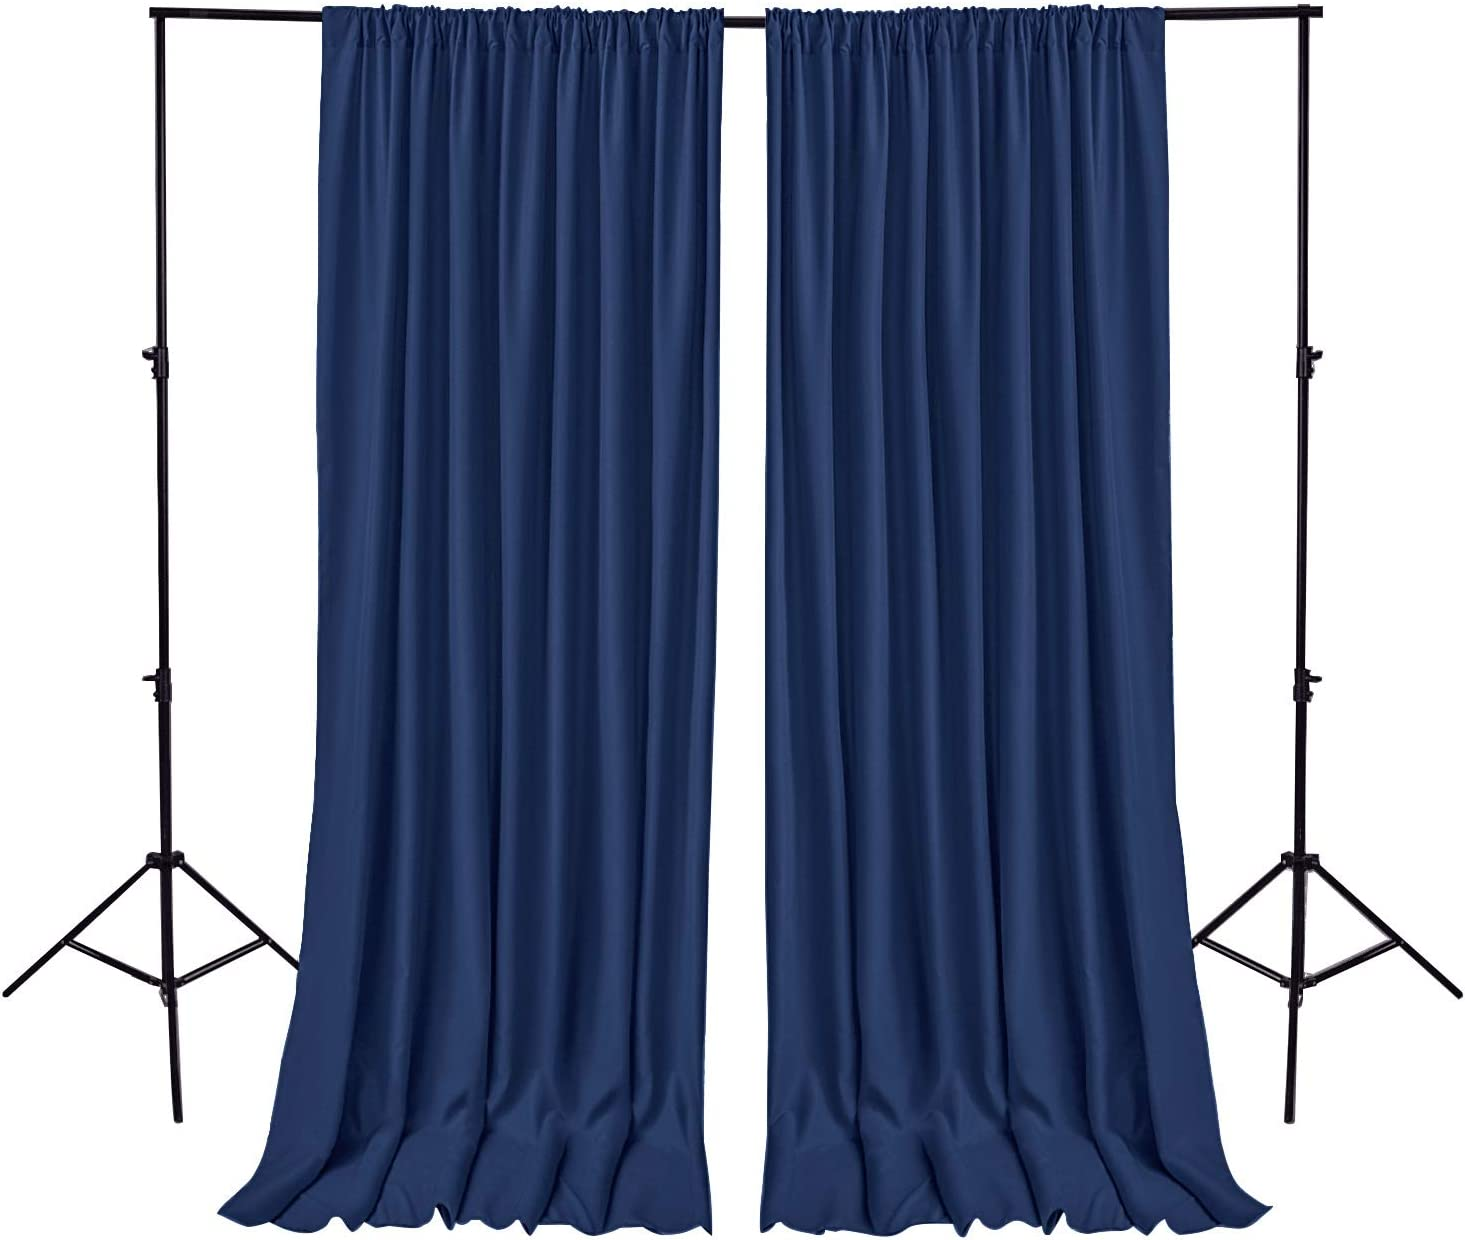 Hiasan Navy Blue Backdrop safety Curtains Parties Photog Polyester Easy-to-use for